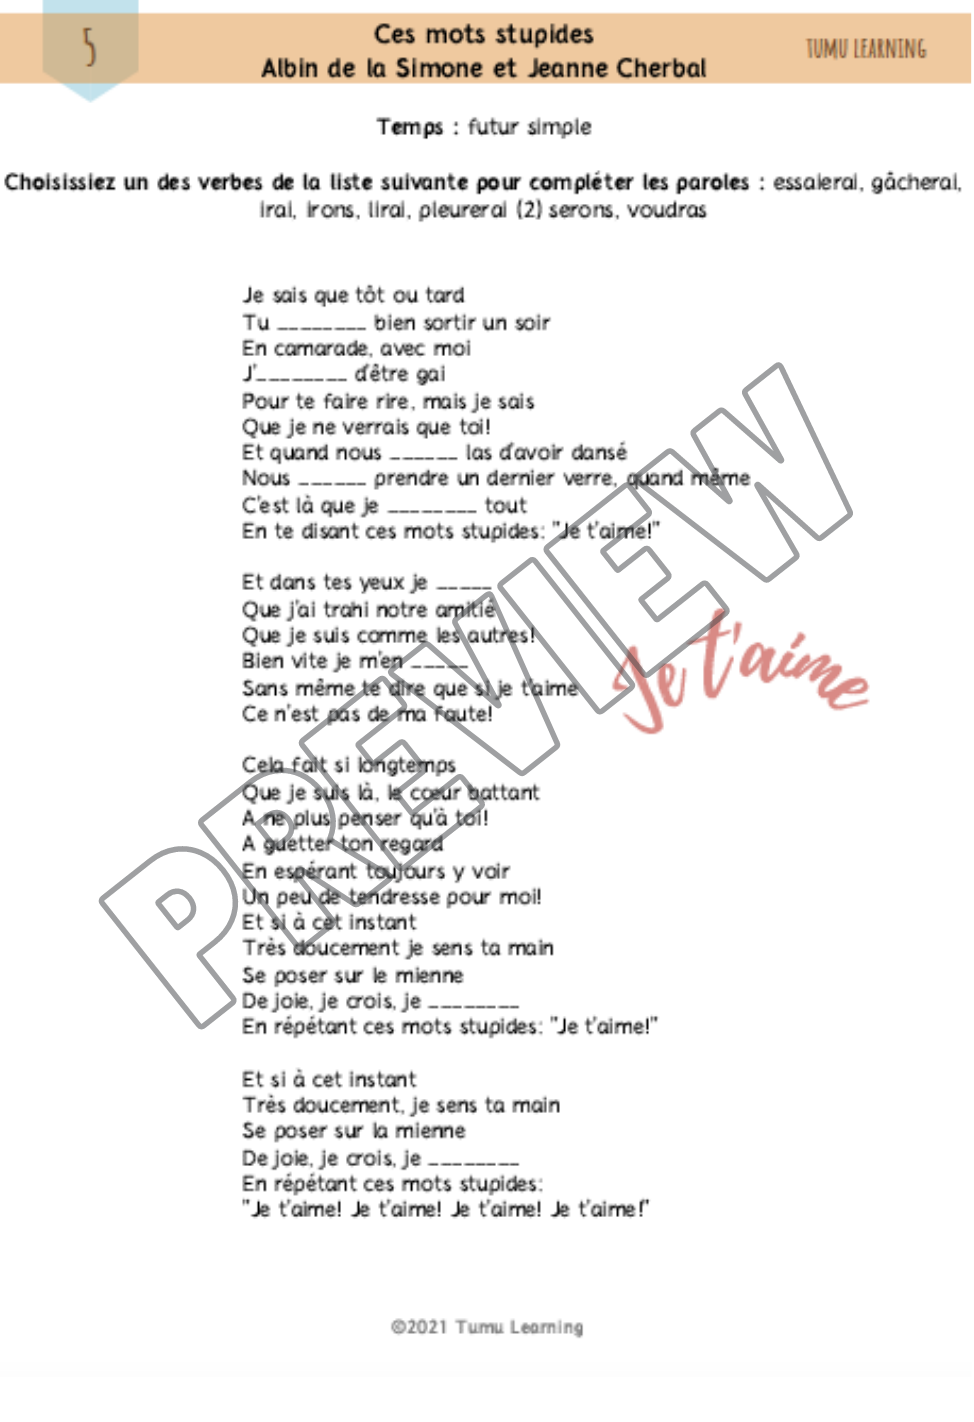 Description Practice French verb conjugations with songs! This downloadable & printable resource, designed for both beginner and intermediate students, includes 10 activity pages and 10 French songs about love. It will help you learn the most common French tenses and moods such as present, past, future tenses, and indicative, imperative and subjective moods. For each song, you will find a word list and blanks for you to fill in the missing words as you listen. Some artists include Carla Brun